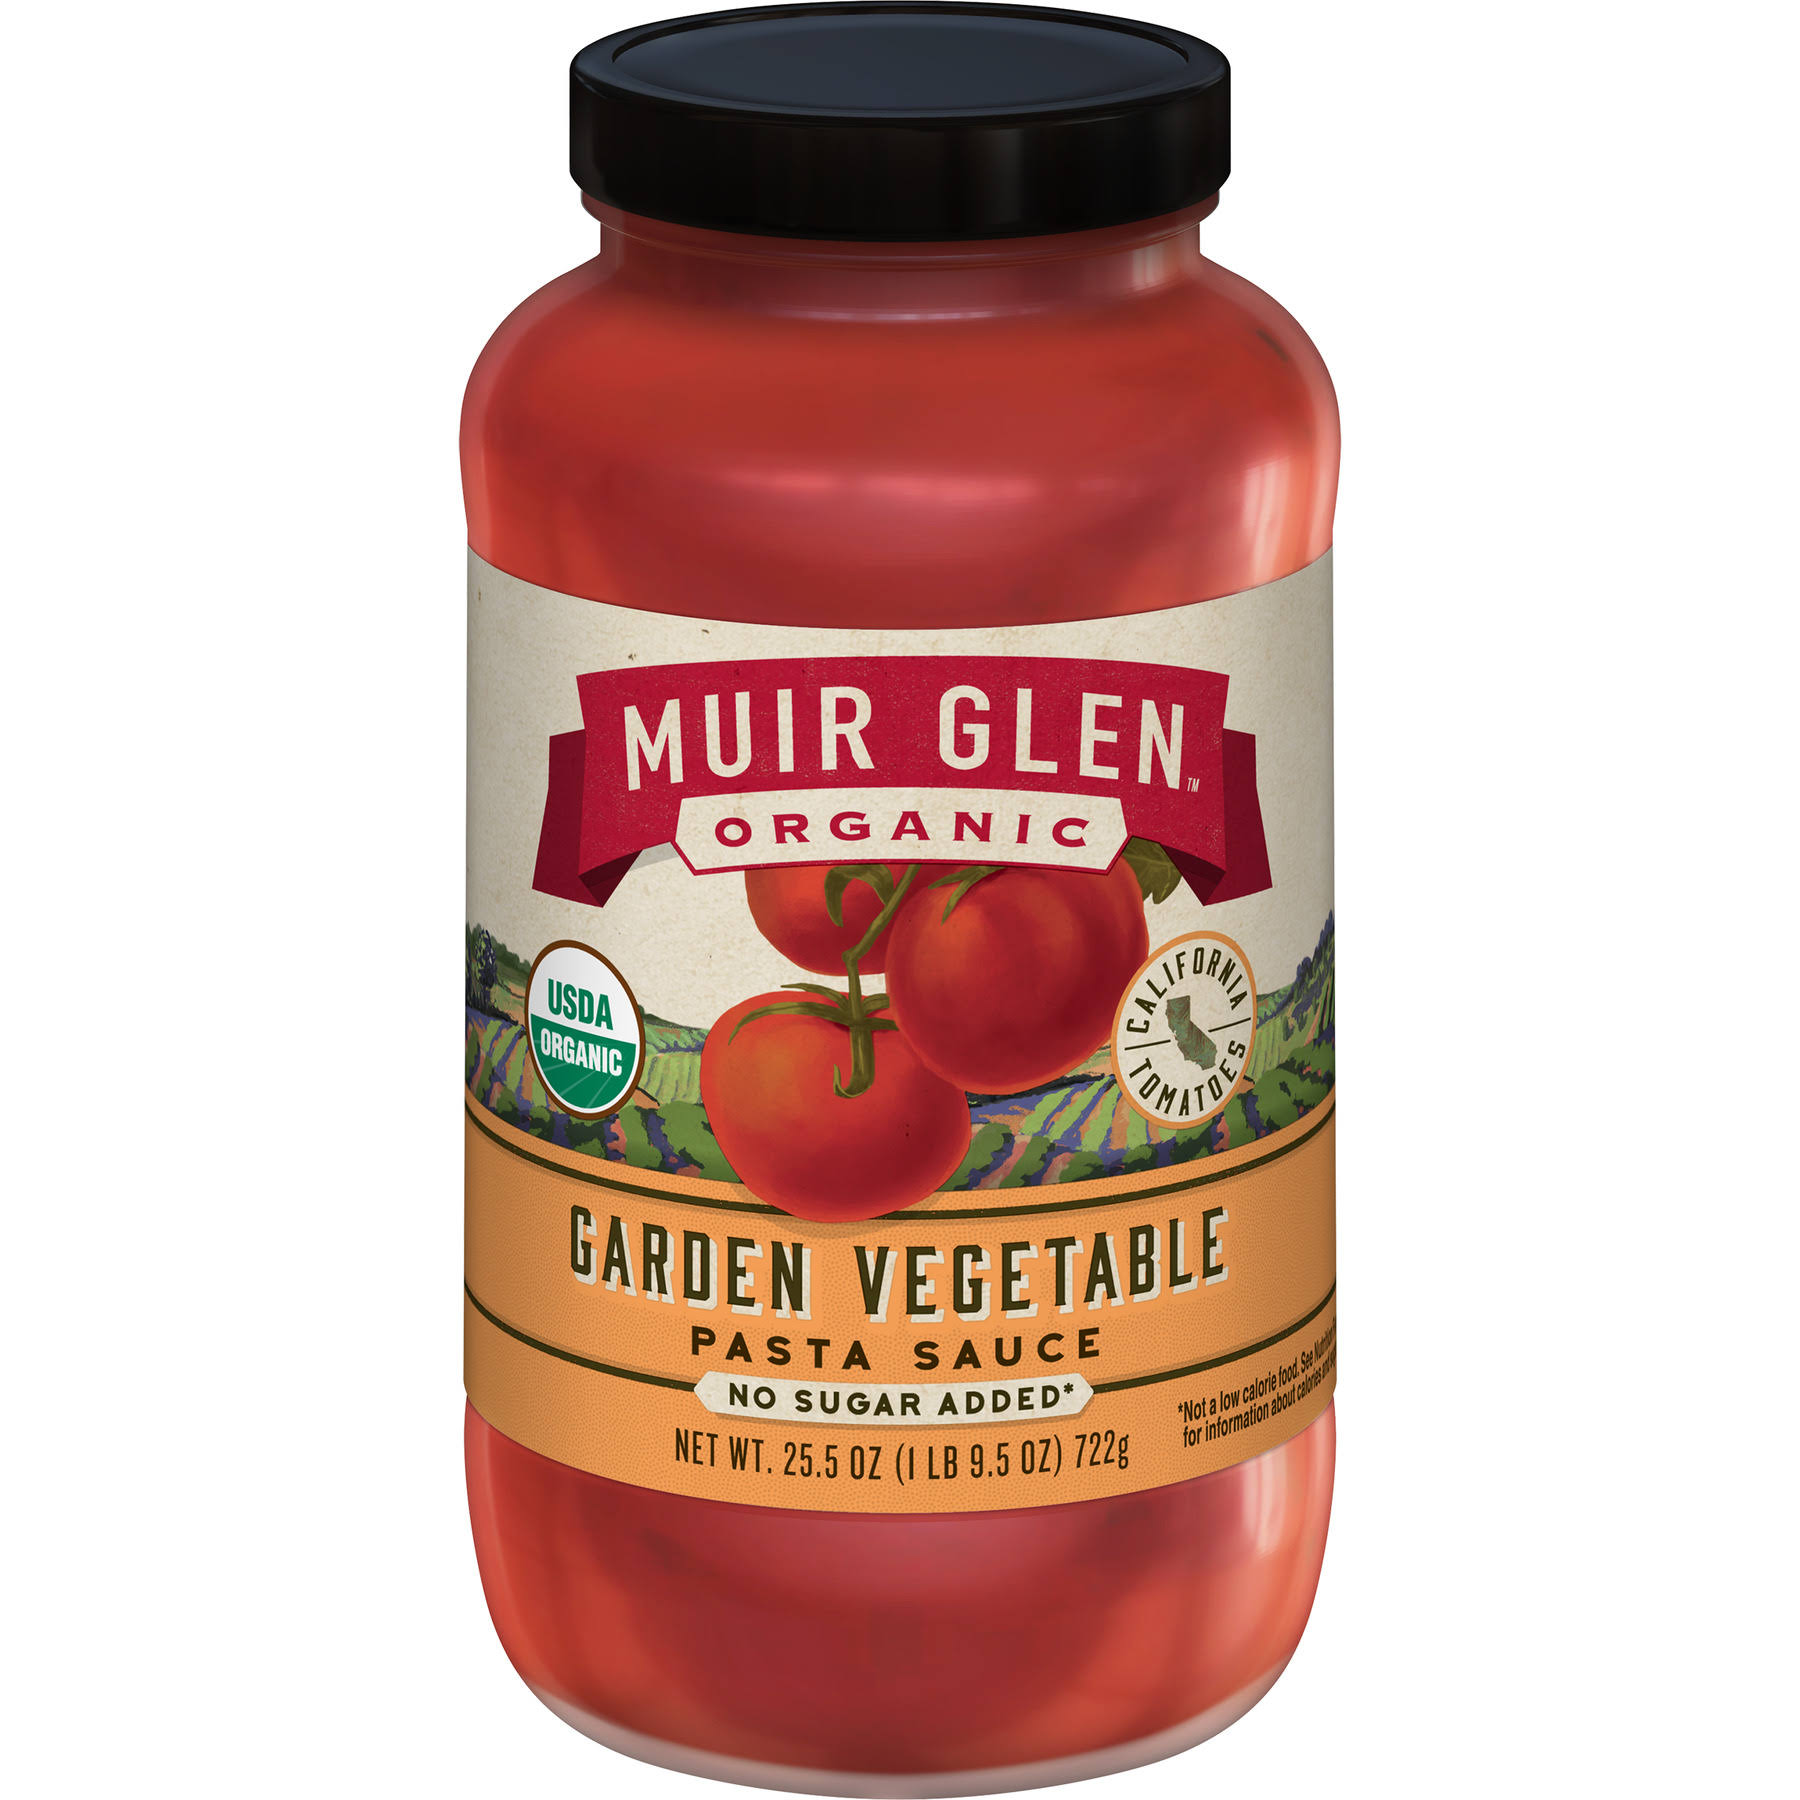 Muir Glen Organic Pasta Sauce - Garden Vegetable